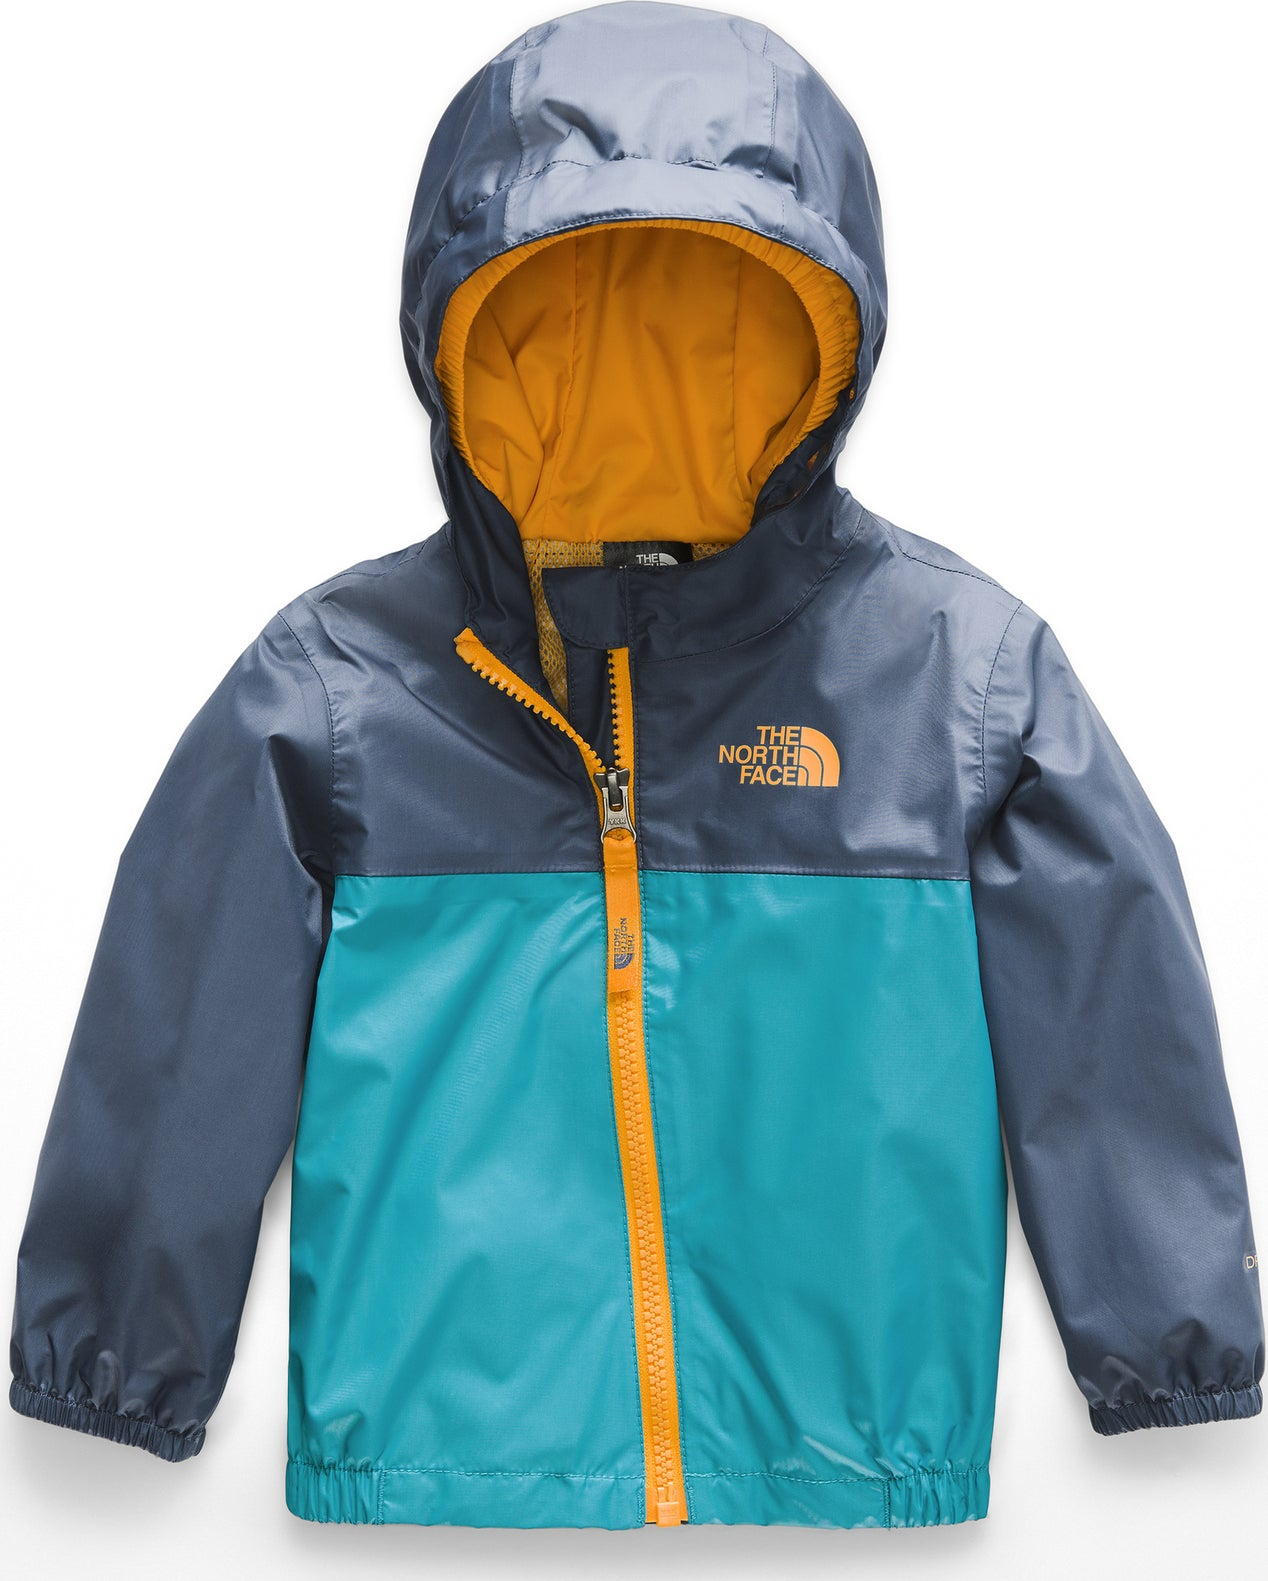 a6cd43b0 The North Face Zipline Rain Jacket - Infant | Altitude Sports